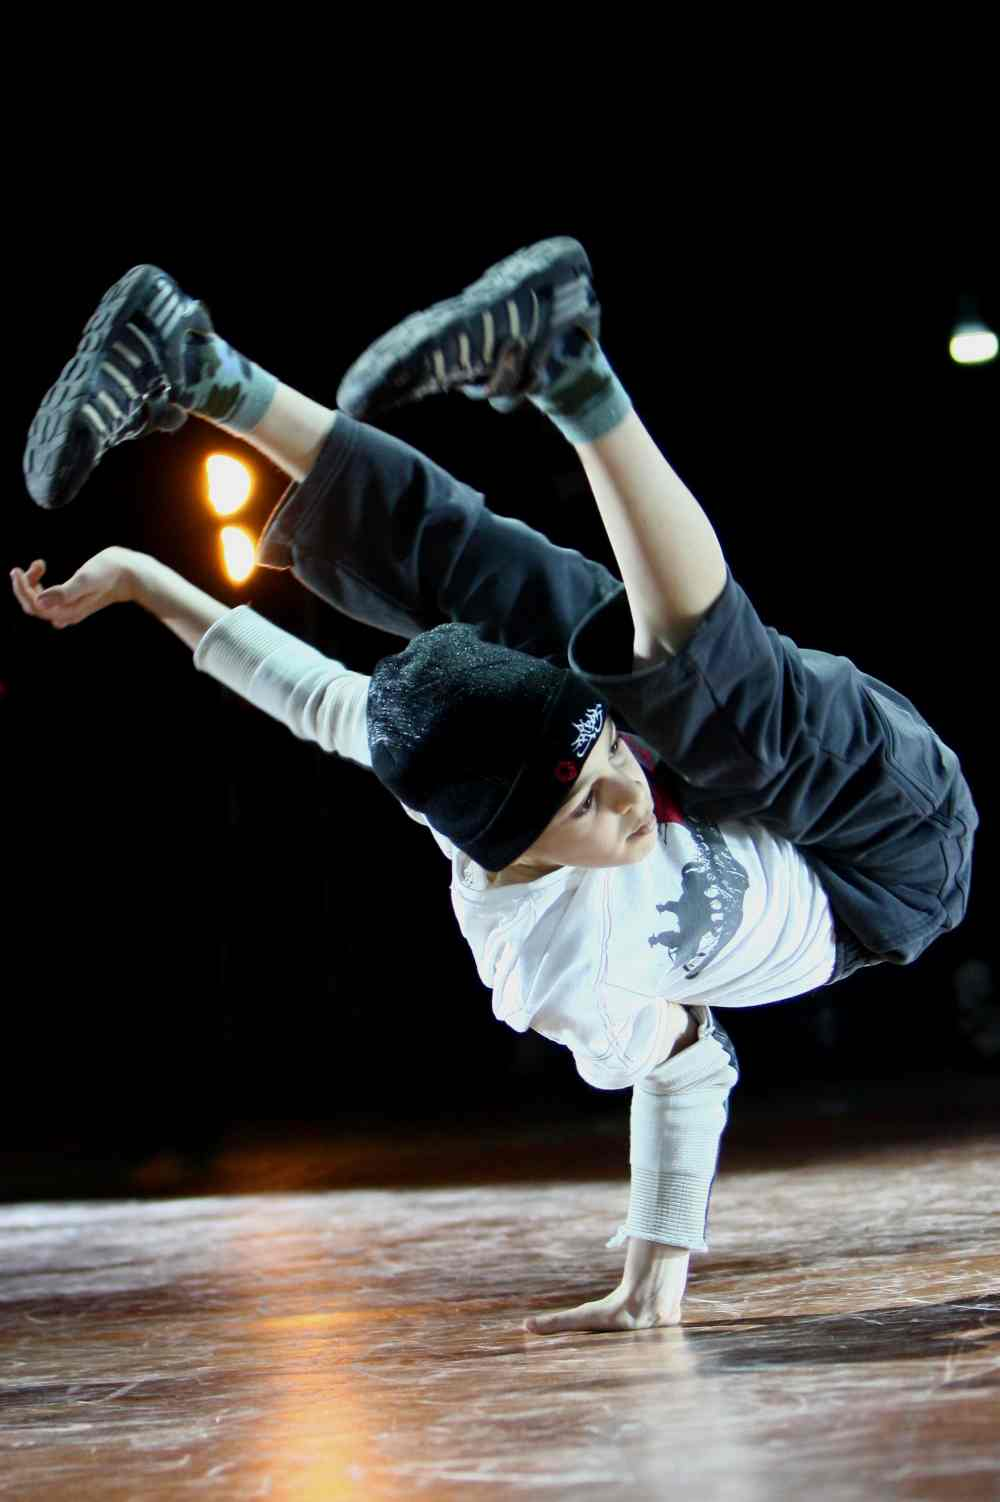 an introduction to the history of breakdancing